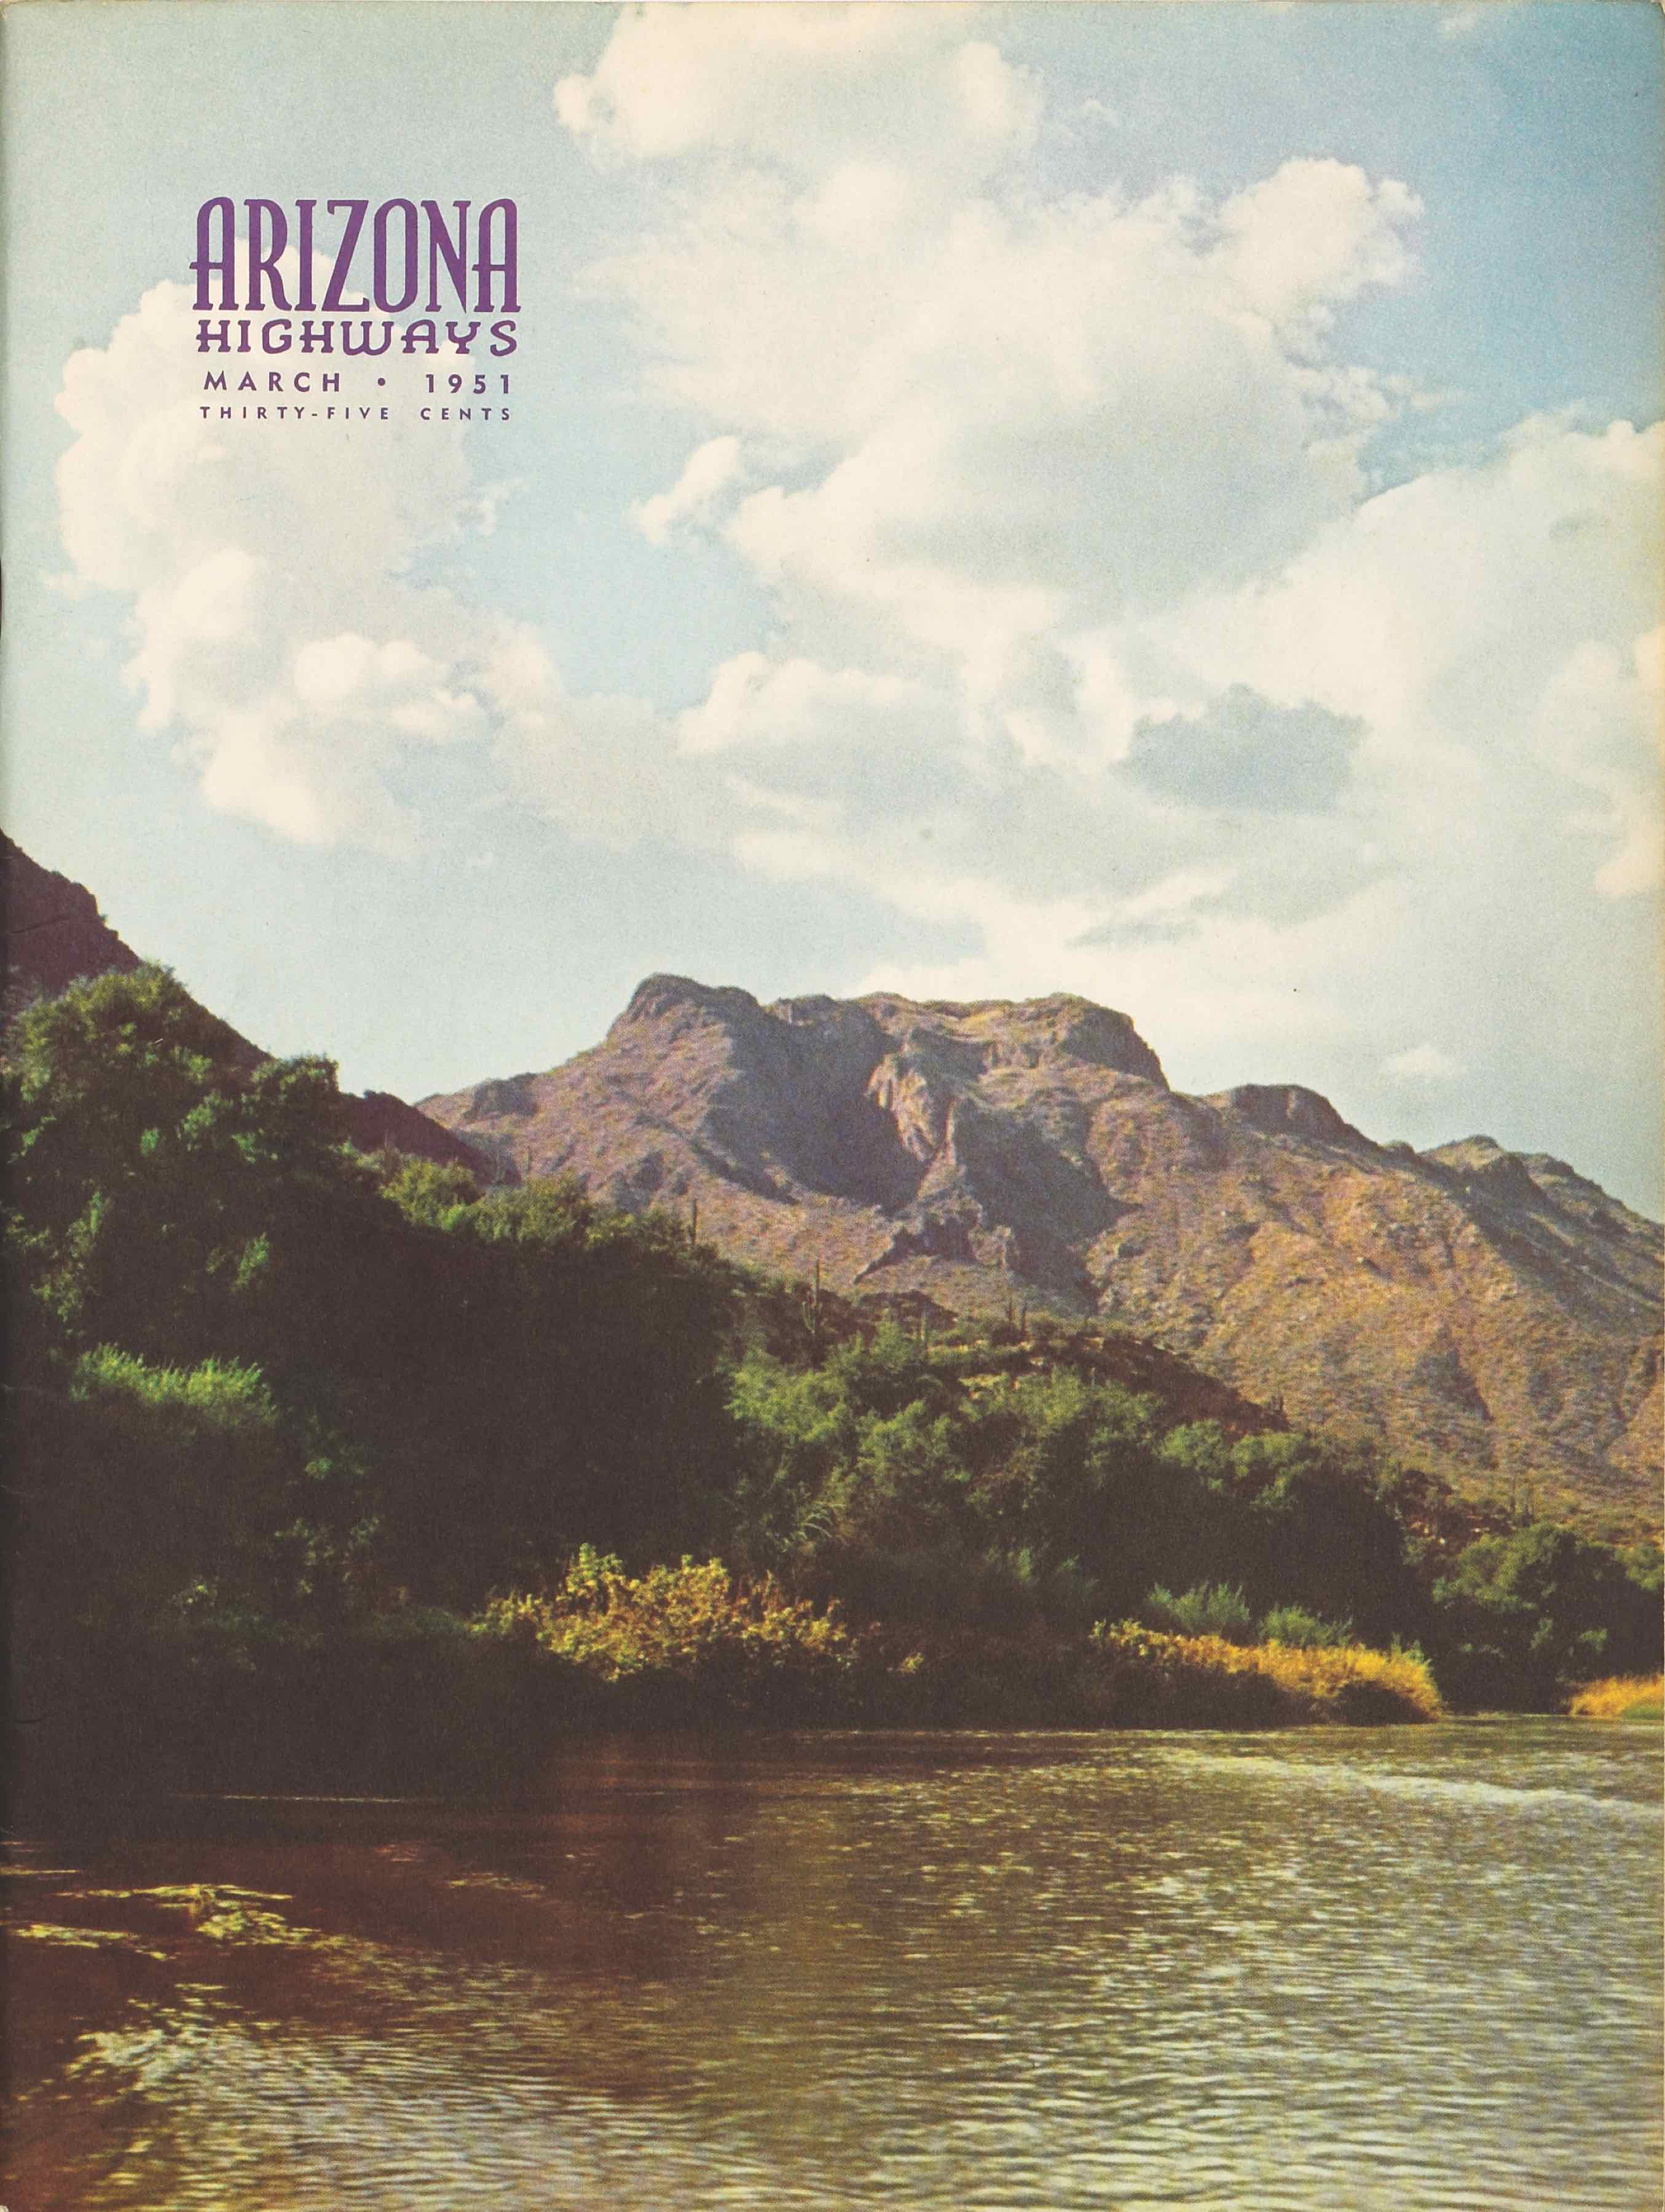 Arizona Highways March 1951 cover